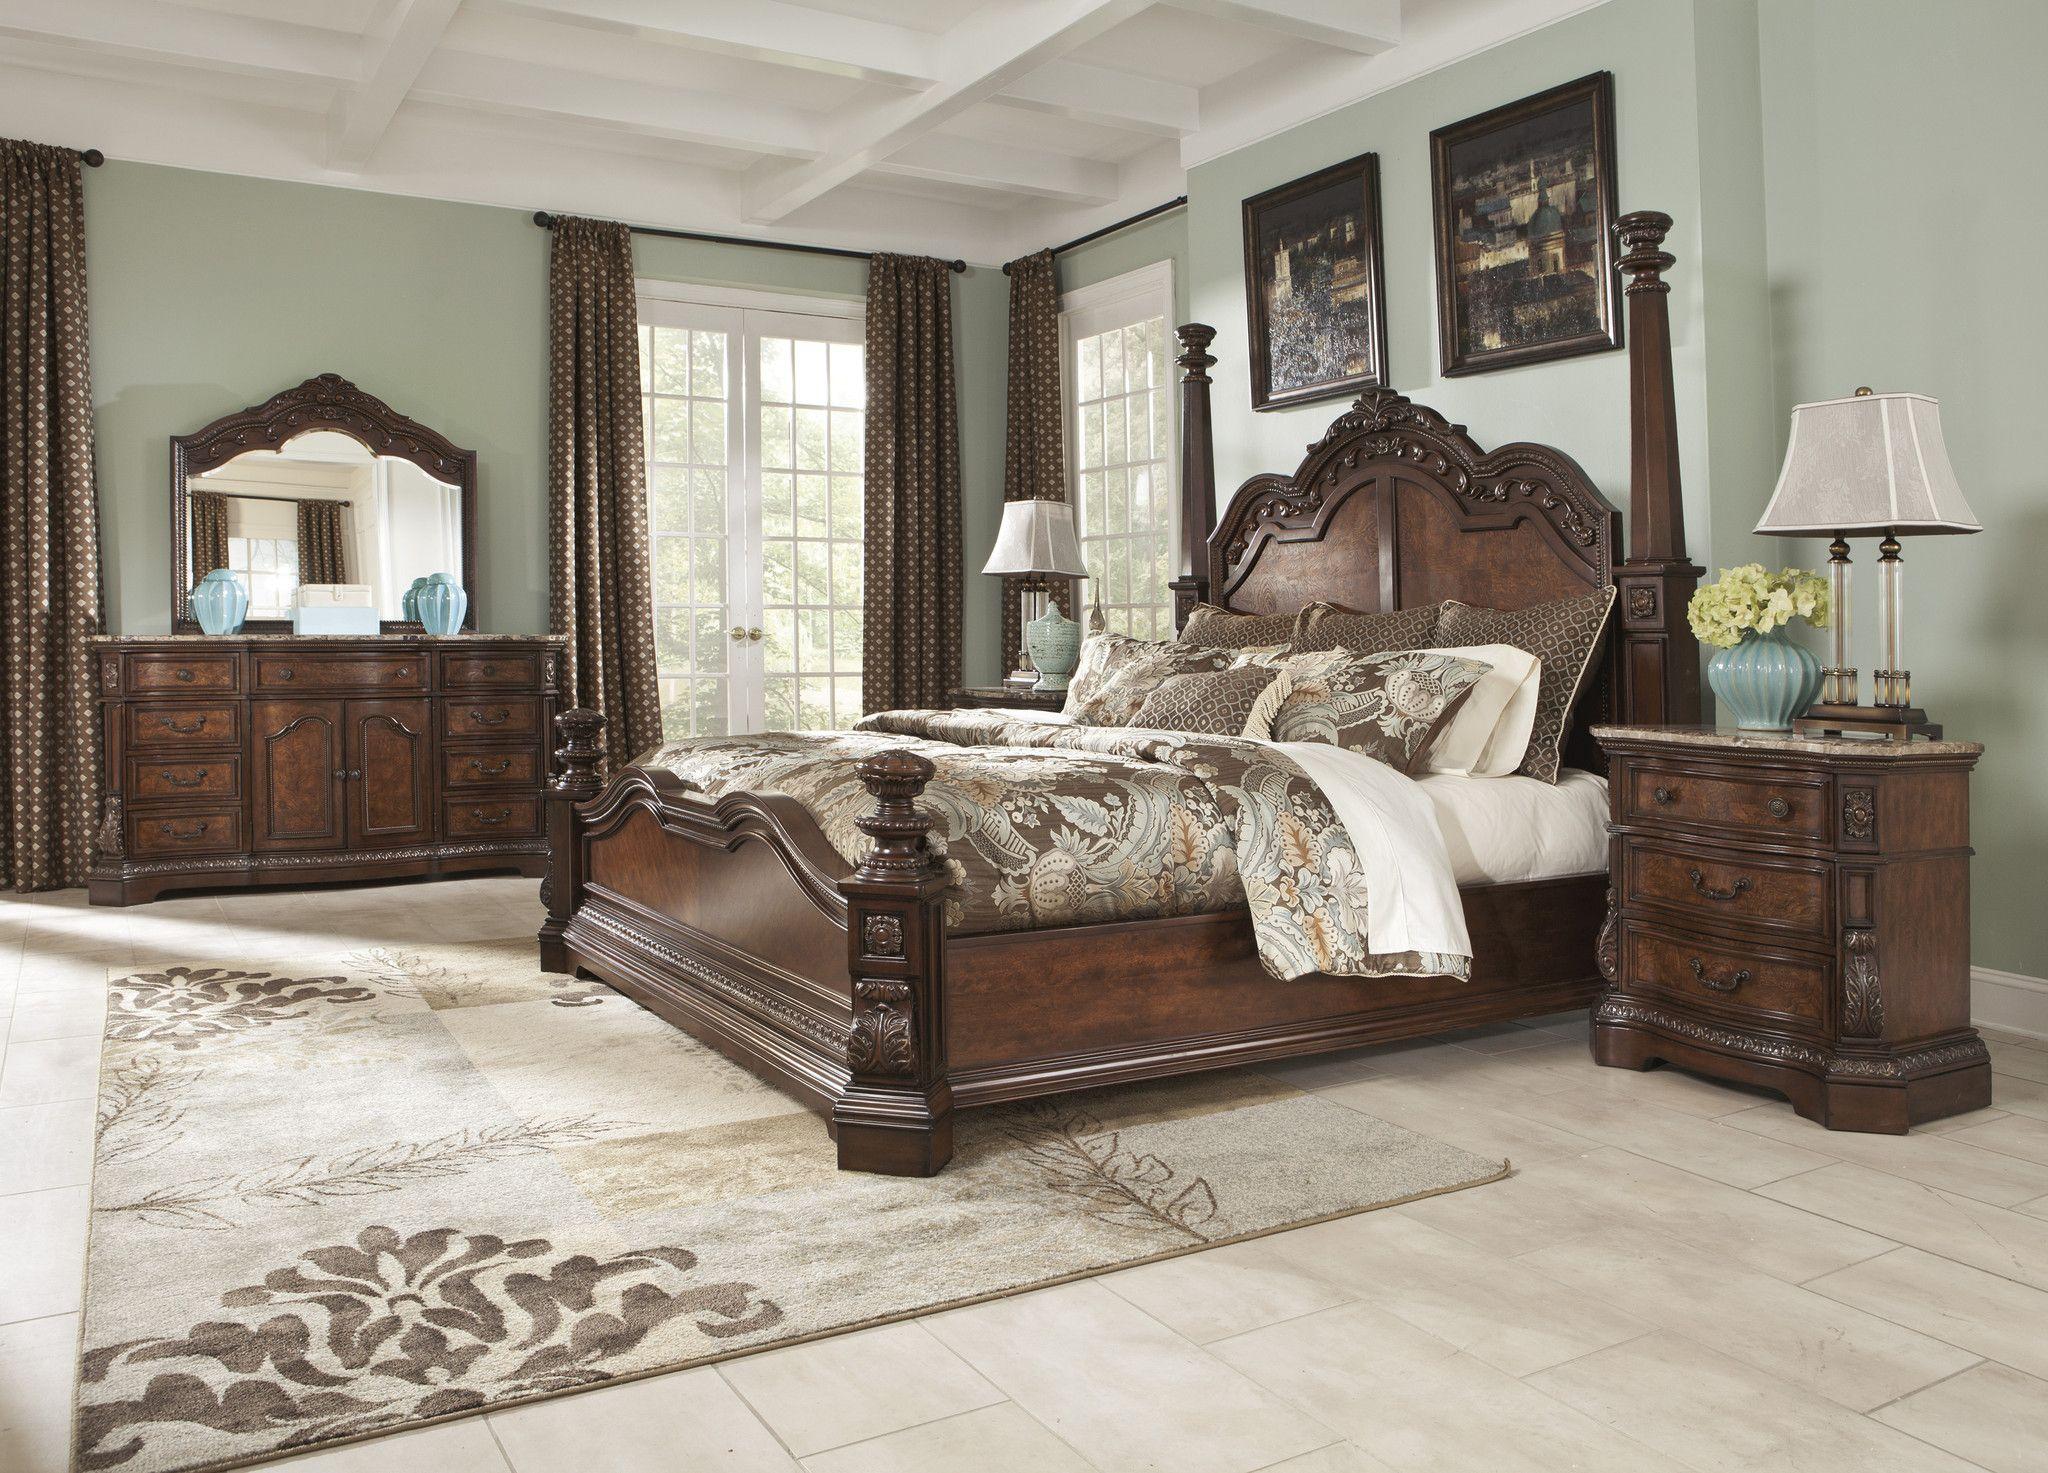 MAYBE A BLUEISH WALL PAINT WITH DARK CURTAINS? Queen 5pc Bedroom Set - Old World Style - Dark Cherry Stain Finish